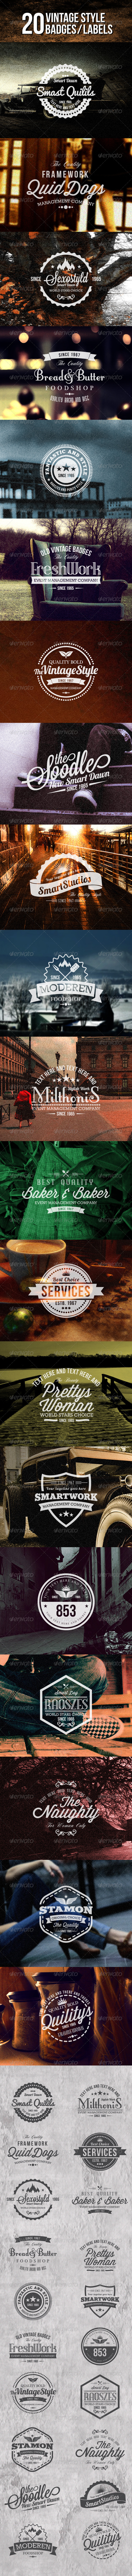 GraphicRiver 20 Vintage Badges and Labels 6531994